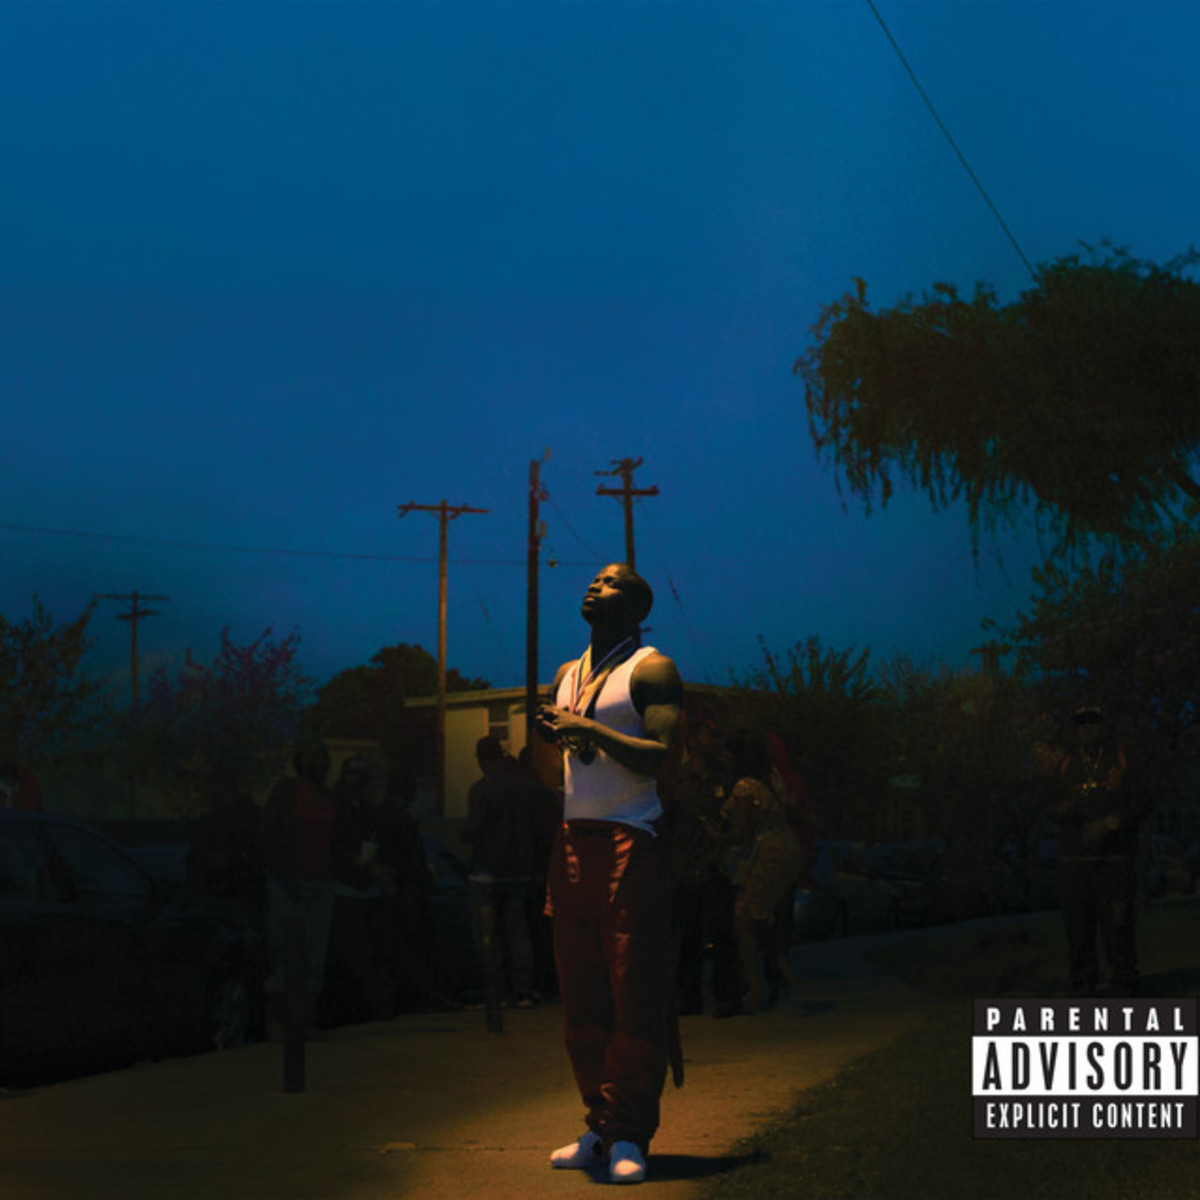 jay-rock-redemption-album-art